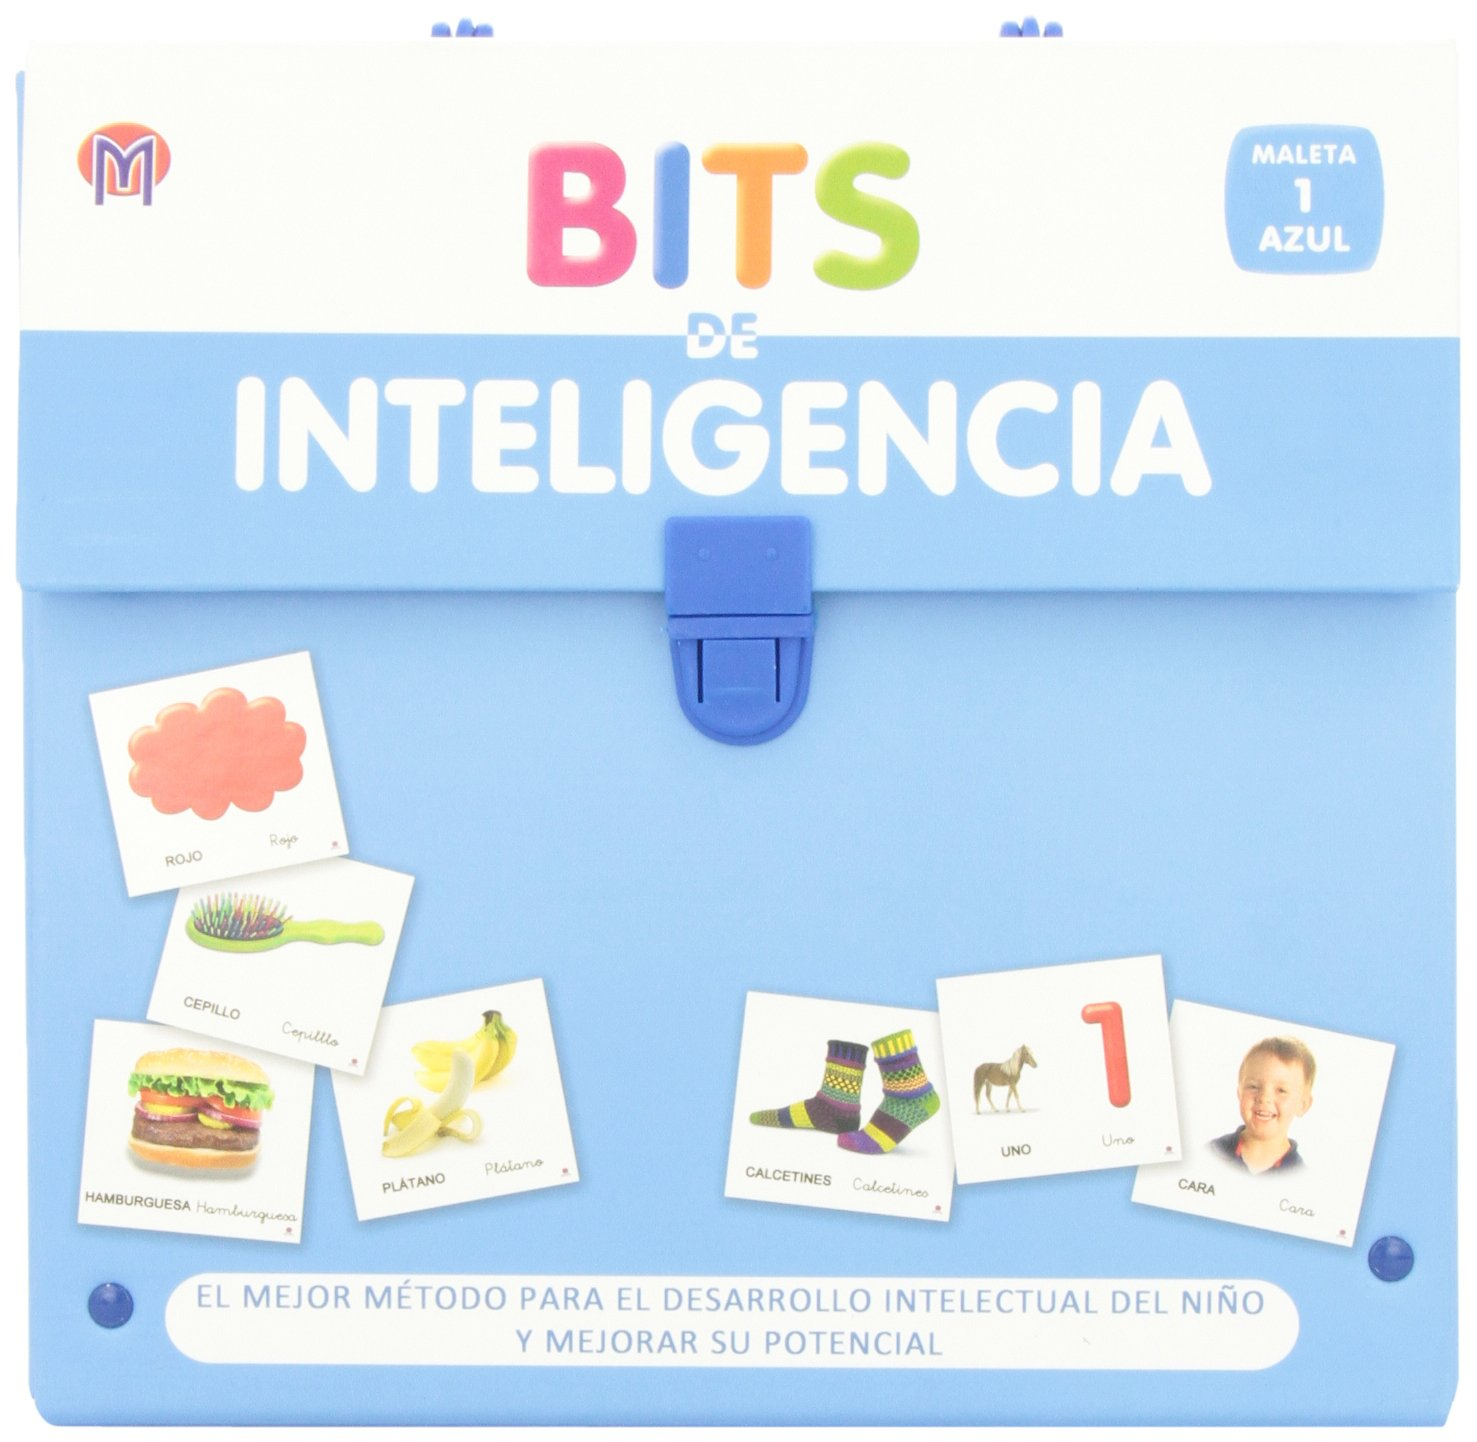 BITS DE INTELIGENCIA (MALETA 1 AZUL): MONTERREY GRUPO EDITORIAL: 9788493671846: Amazon.com: Books